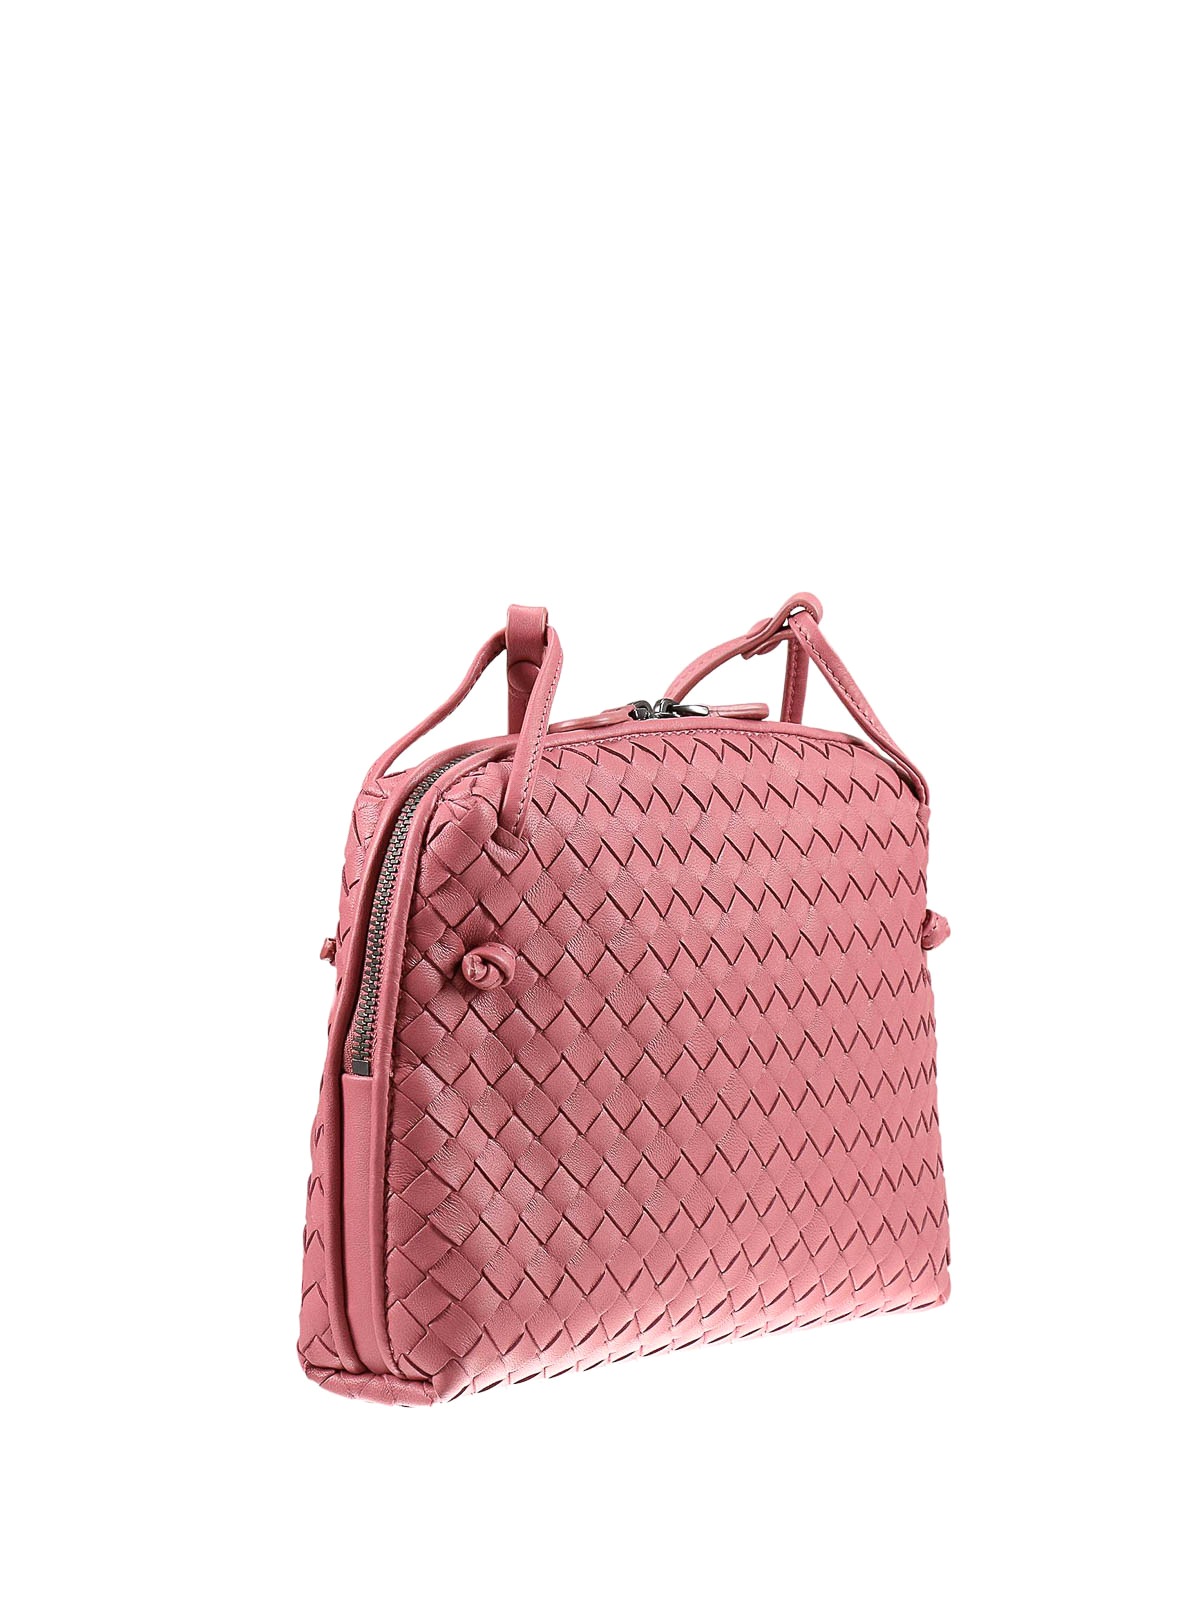 1c8e7b5d3c92 BOTTEGA VENETA  cross body bags online - Intrecciato nappa crossbody bag